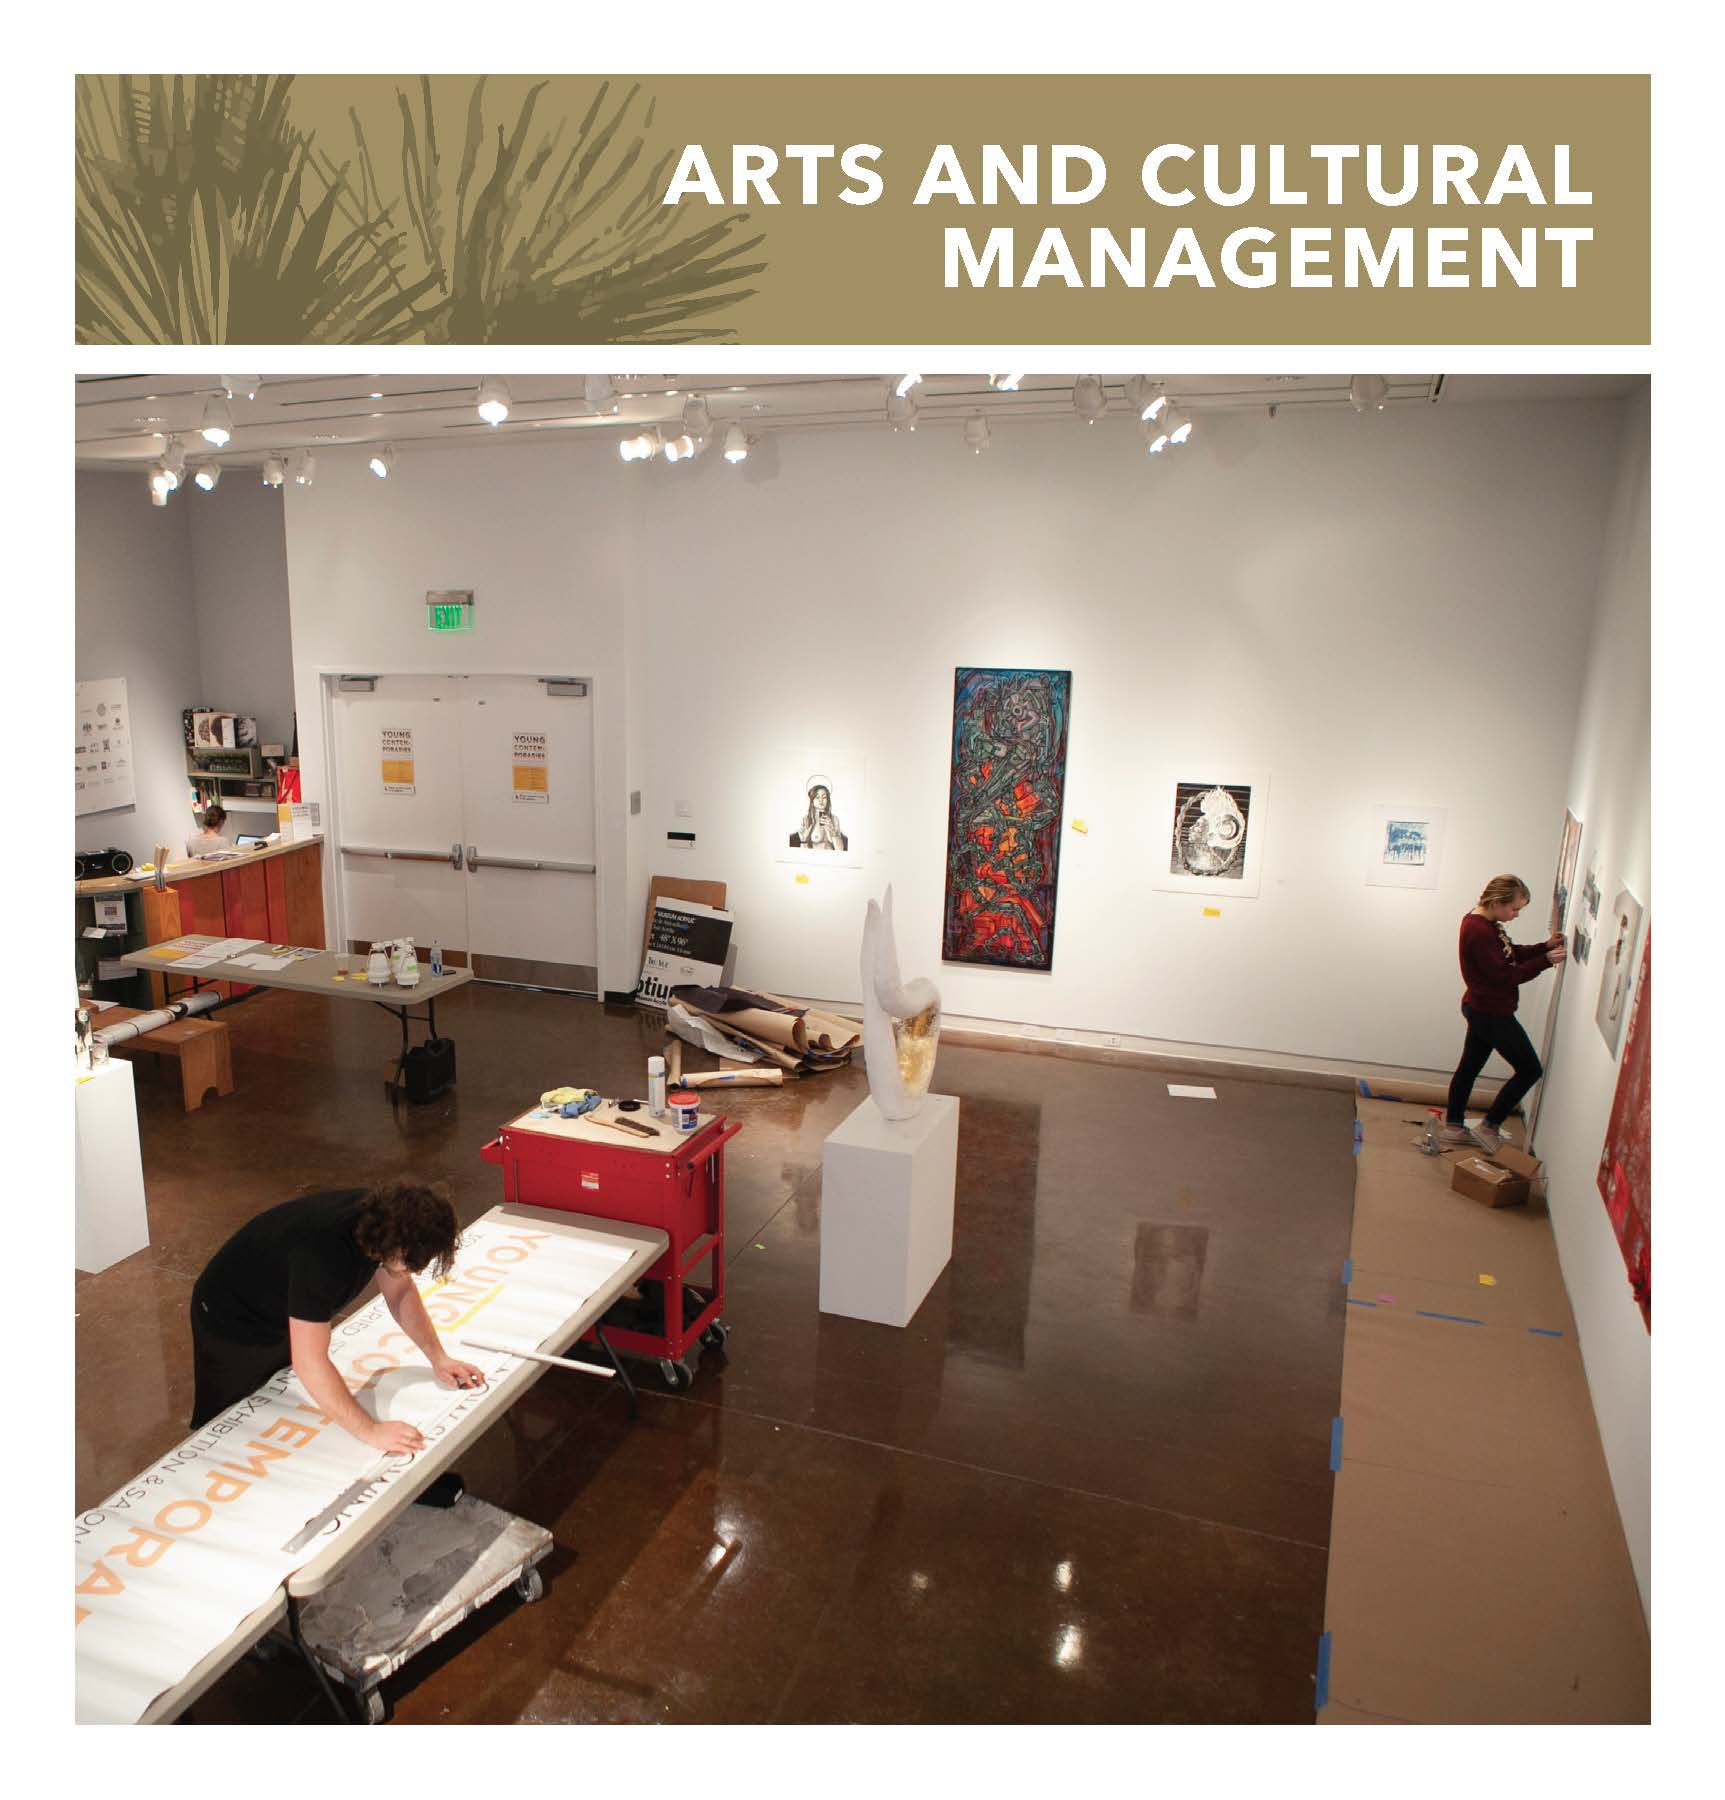 Arts and Cultural Management